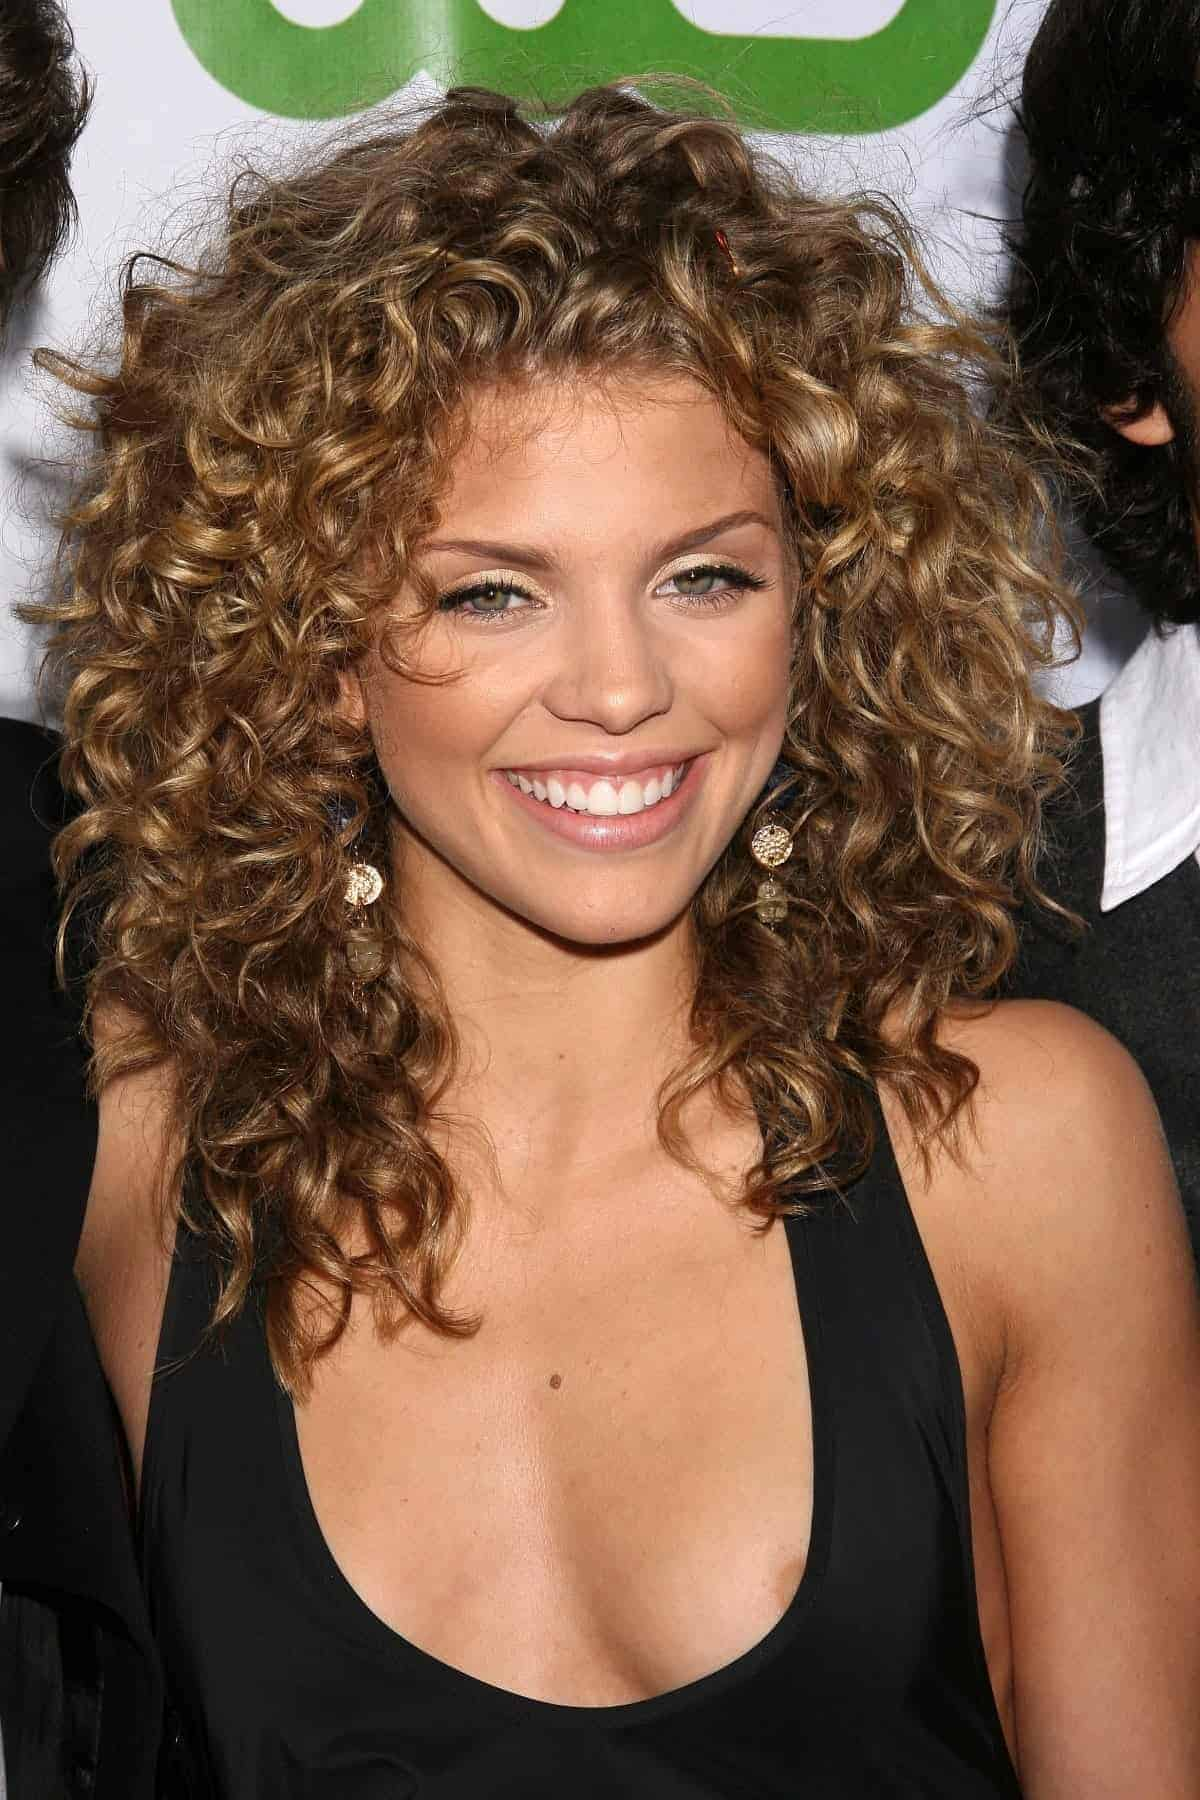 Short wavy hairstyles for round faces 2015 Women styles hairstyles